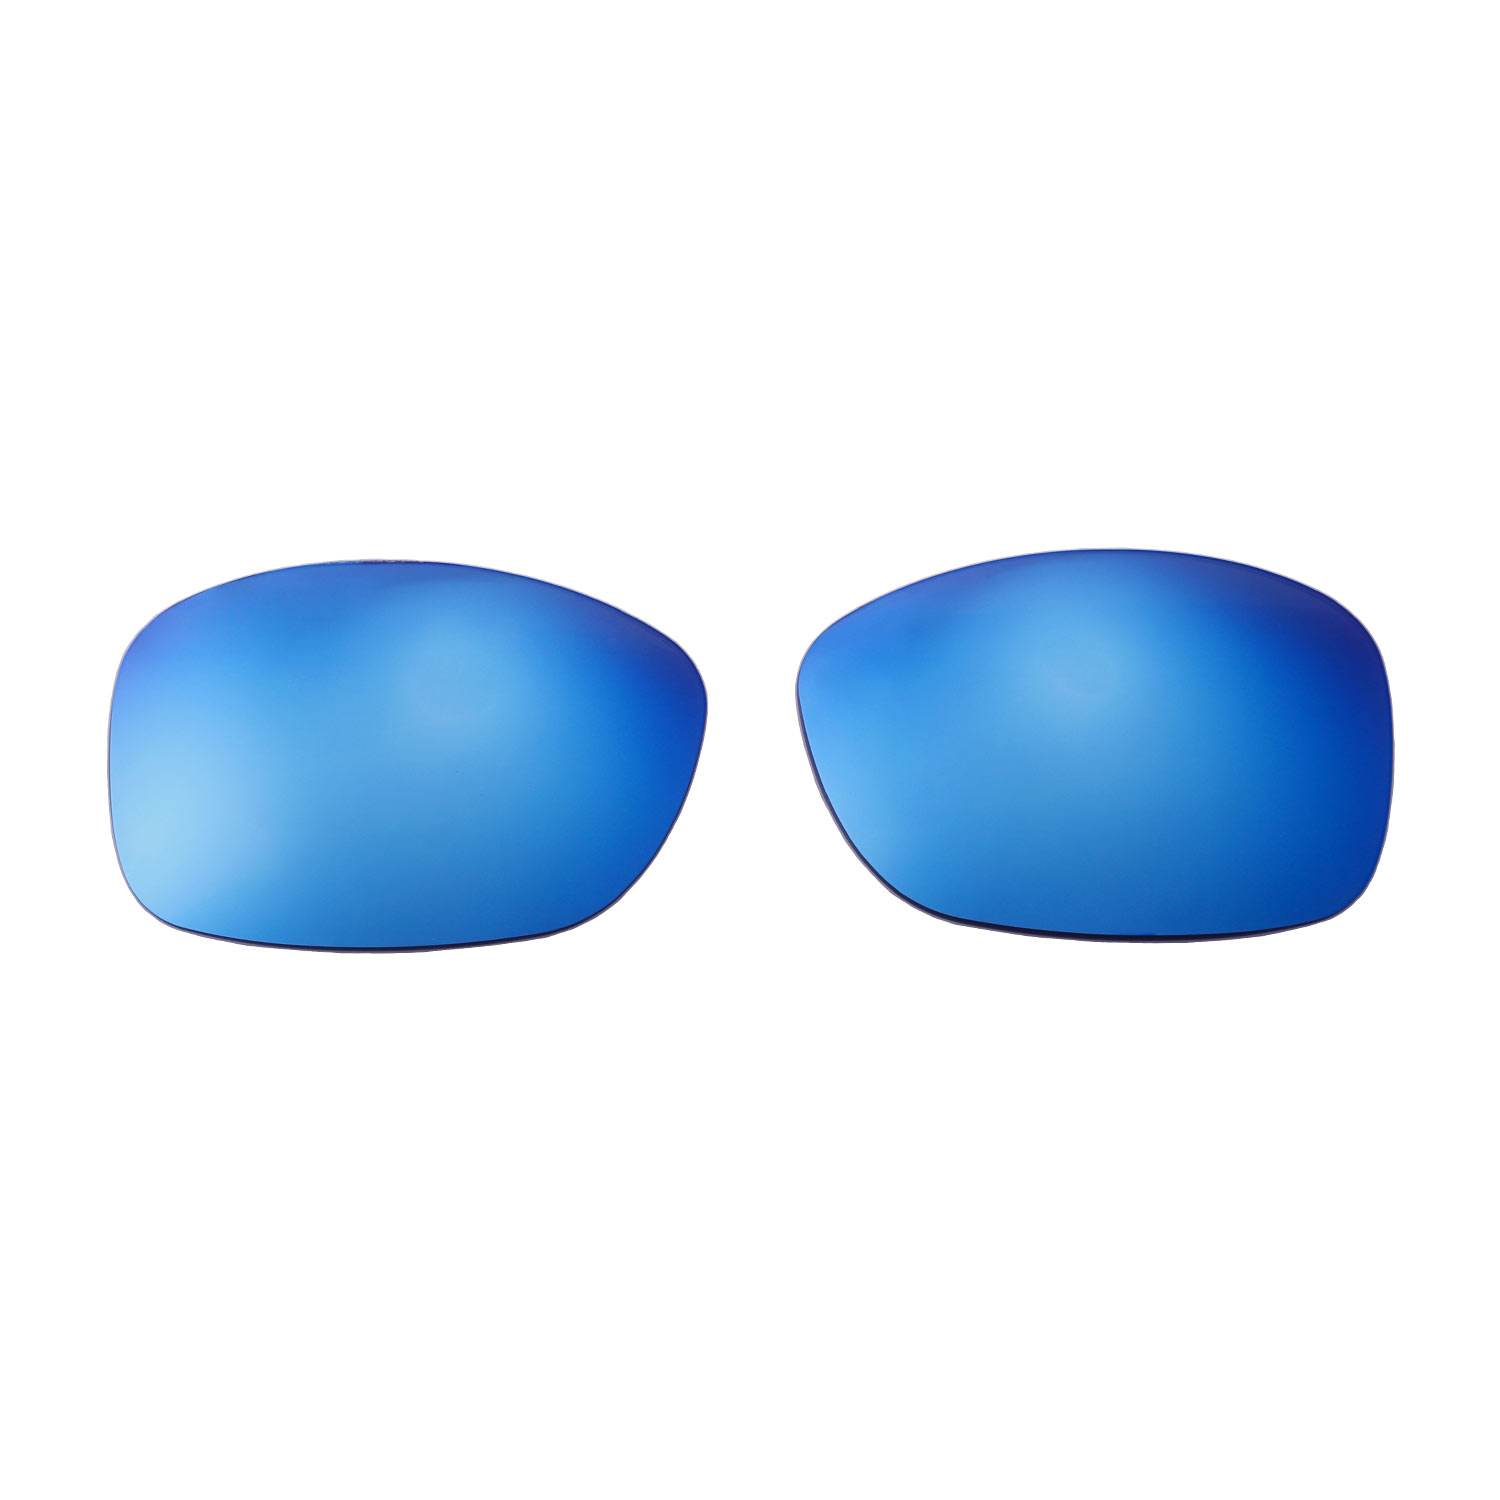 9efac7025b ... Walleva Polarized Ice Blue Lenses for Oakley Urgency x1  Walleva  Microfiber Lens Cleaning Cloth x2